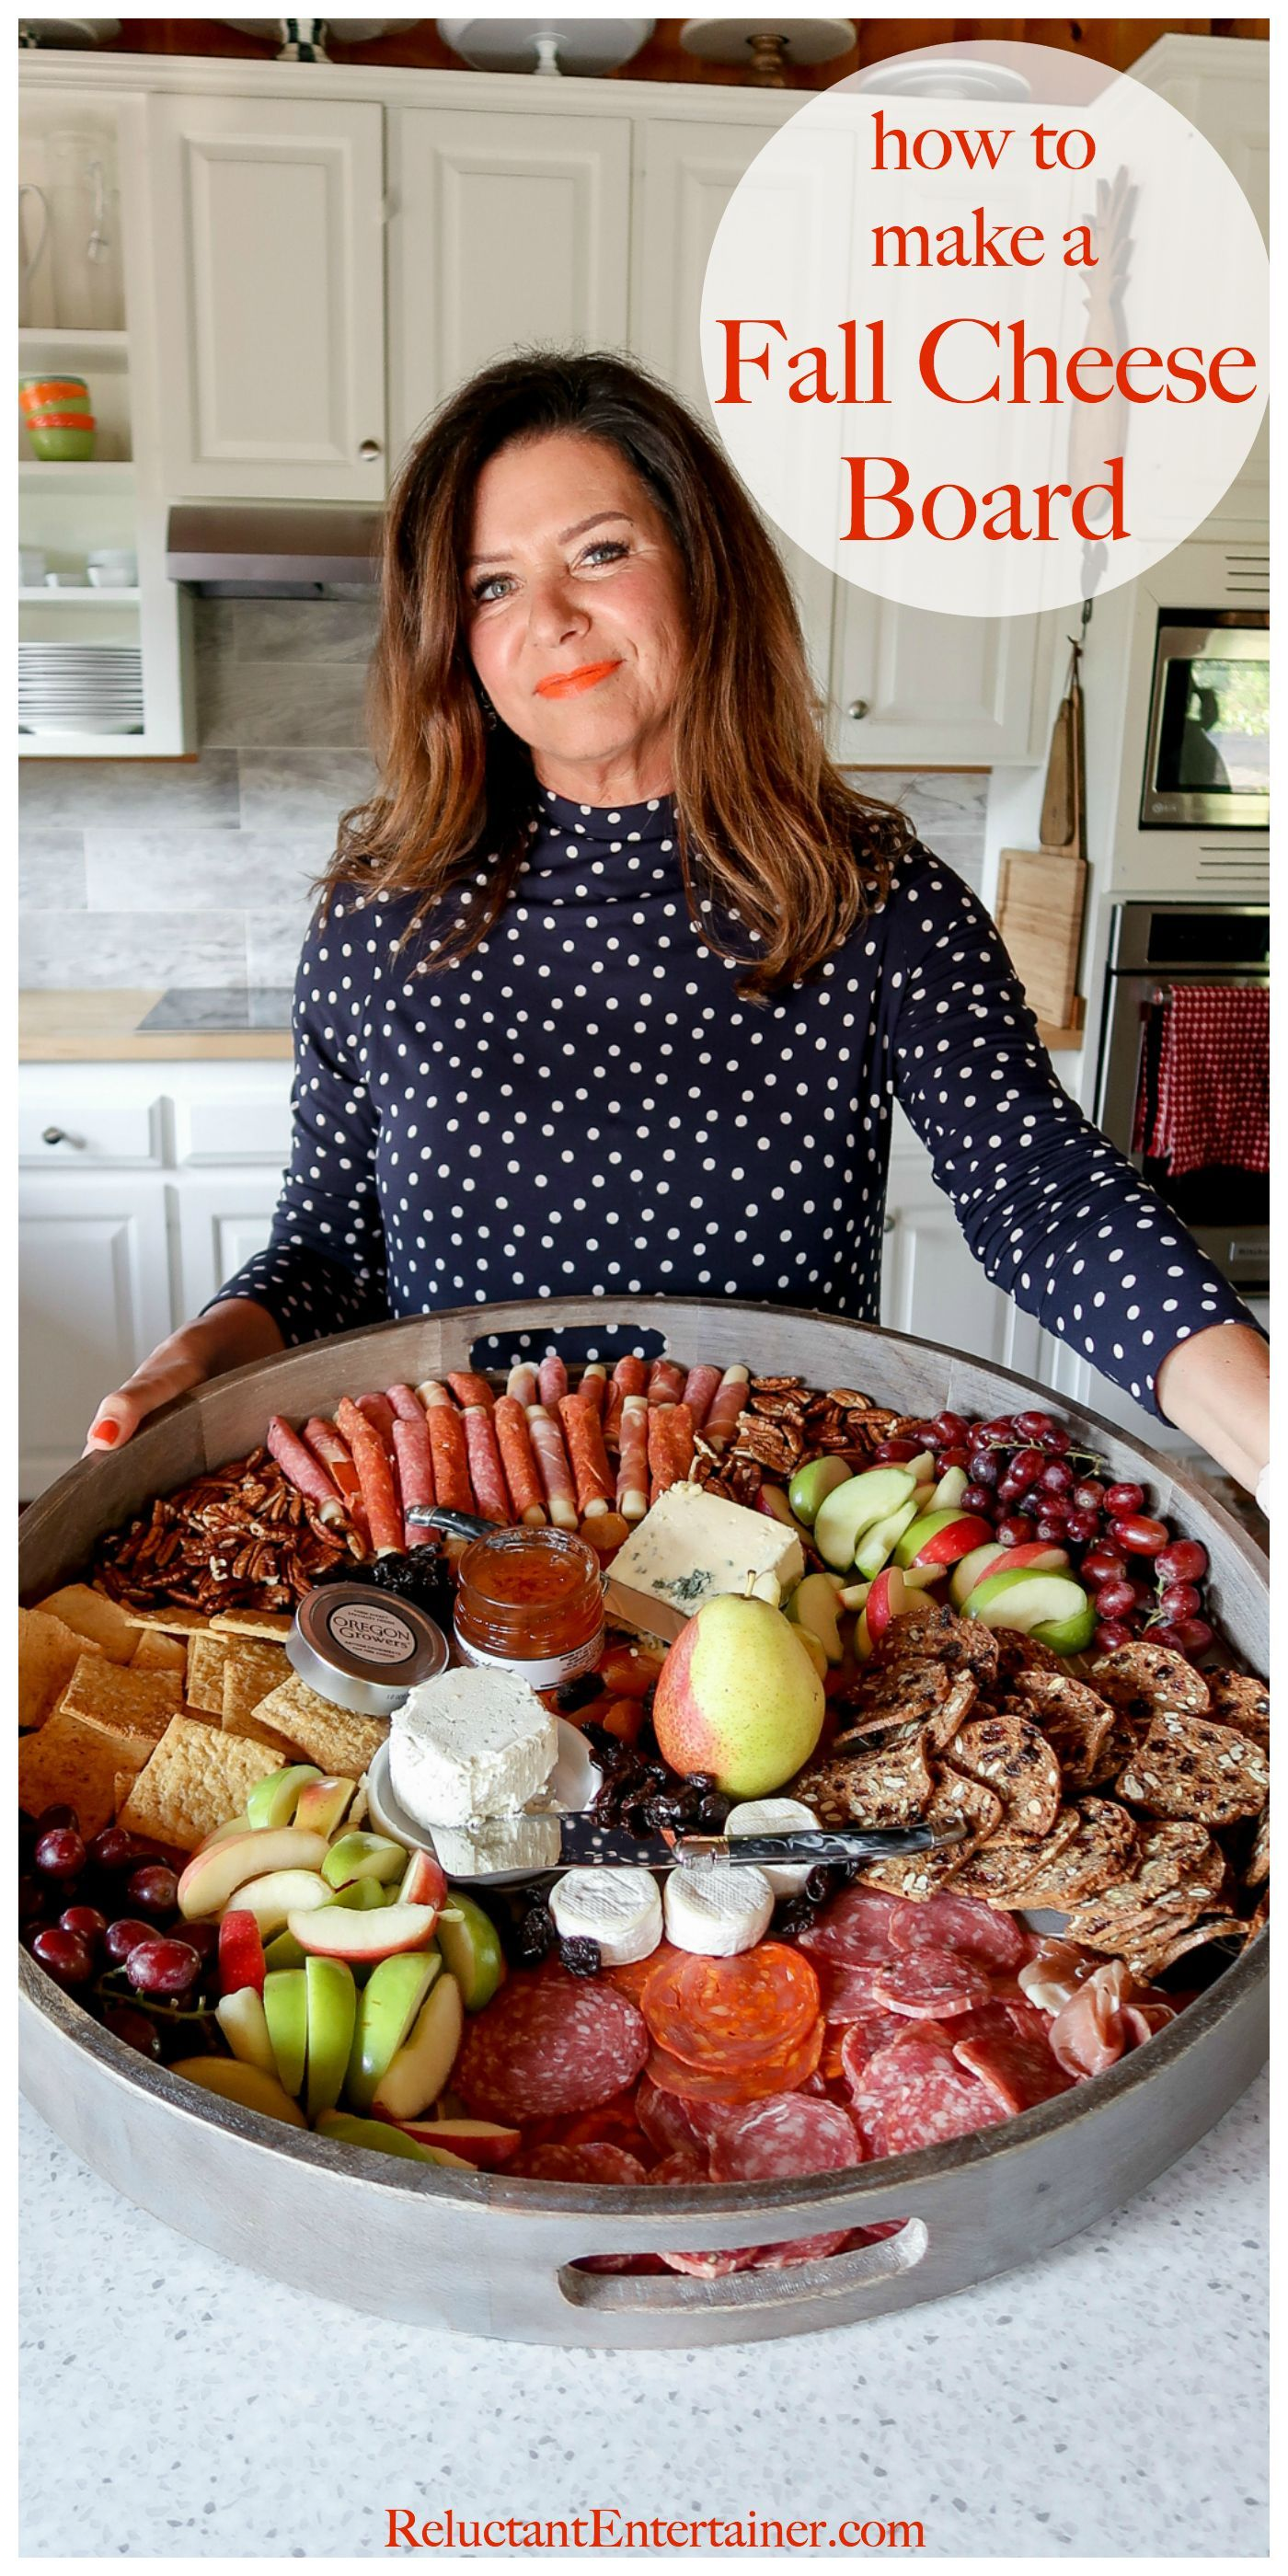 How to make a Fall Cheese Board